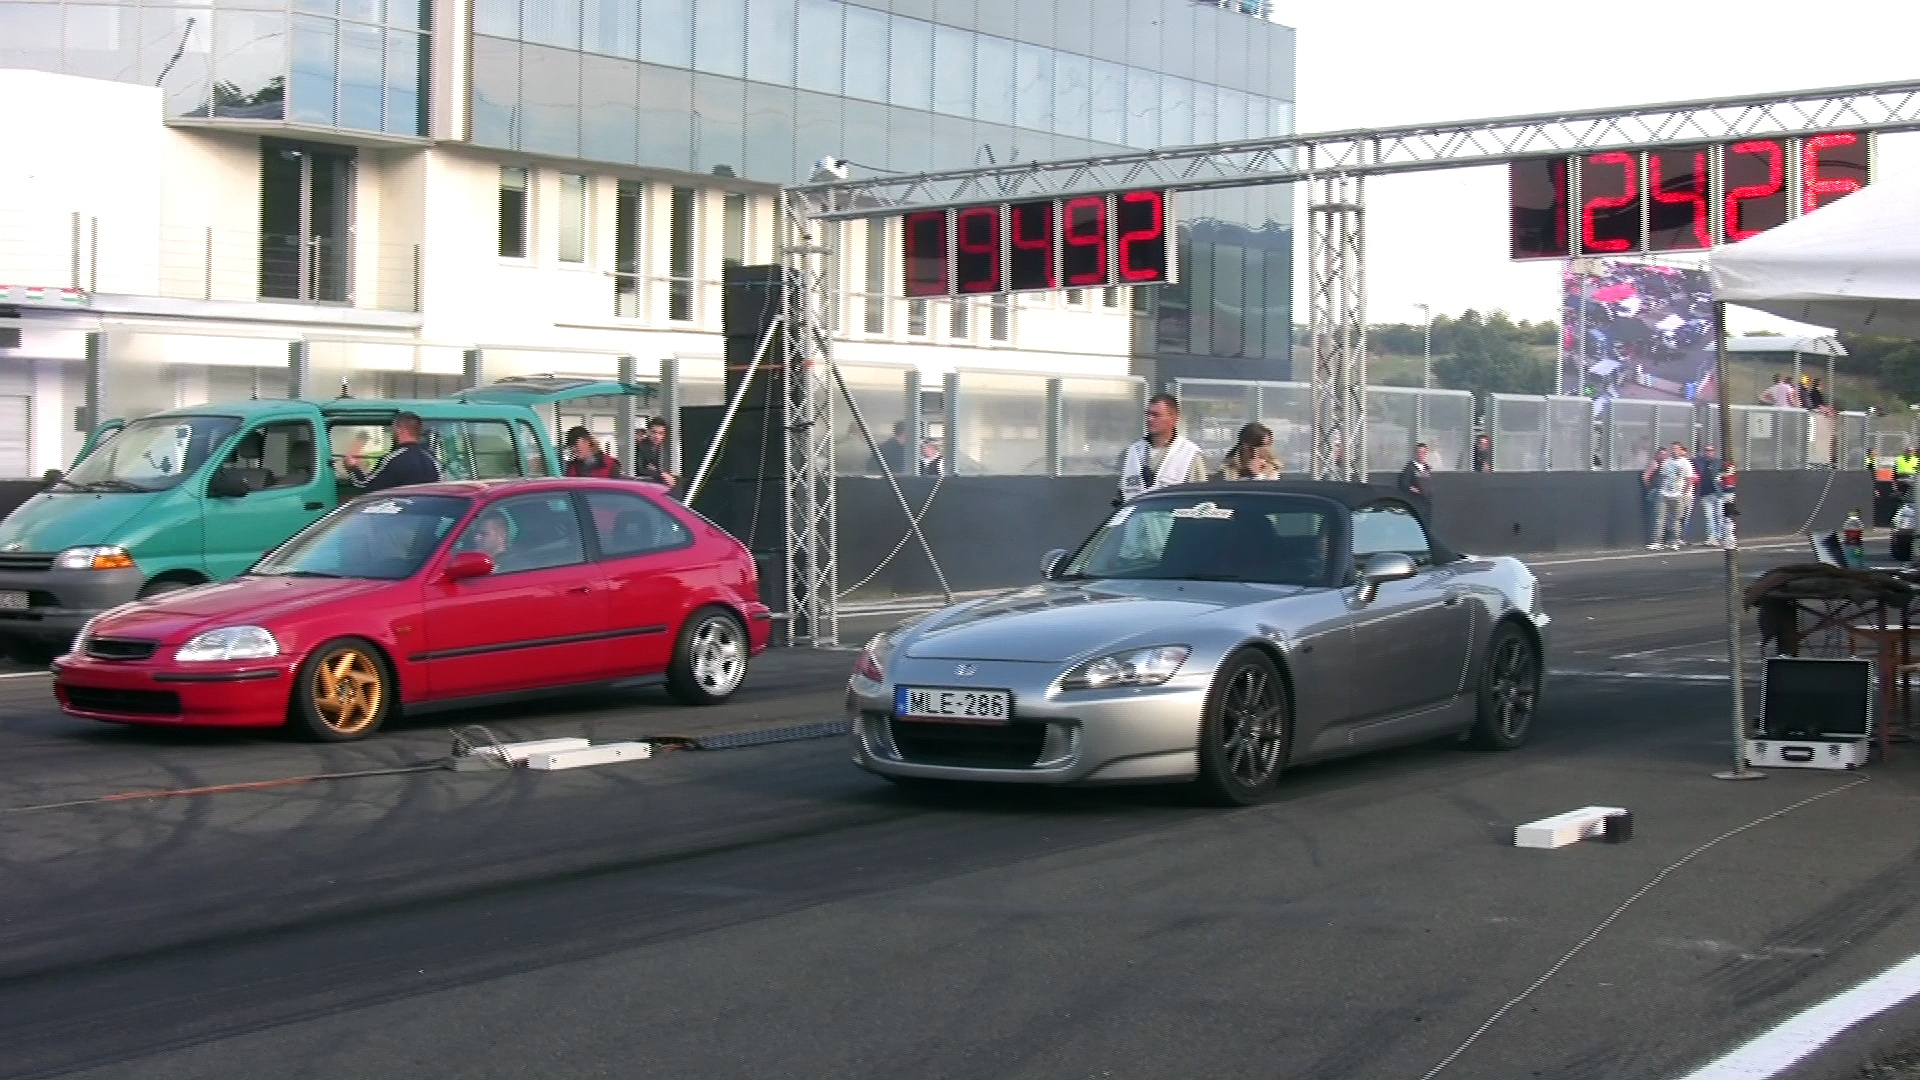 Honda S2000 Vs. Honda Civic VTI